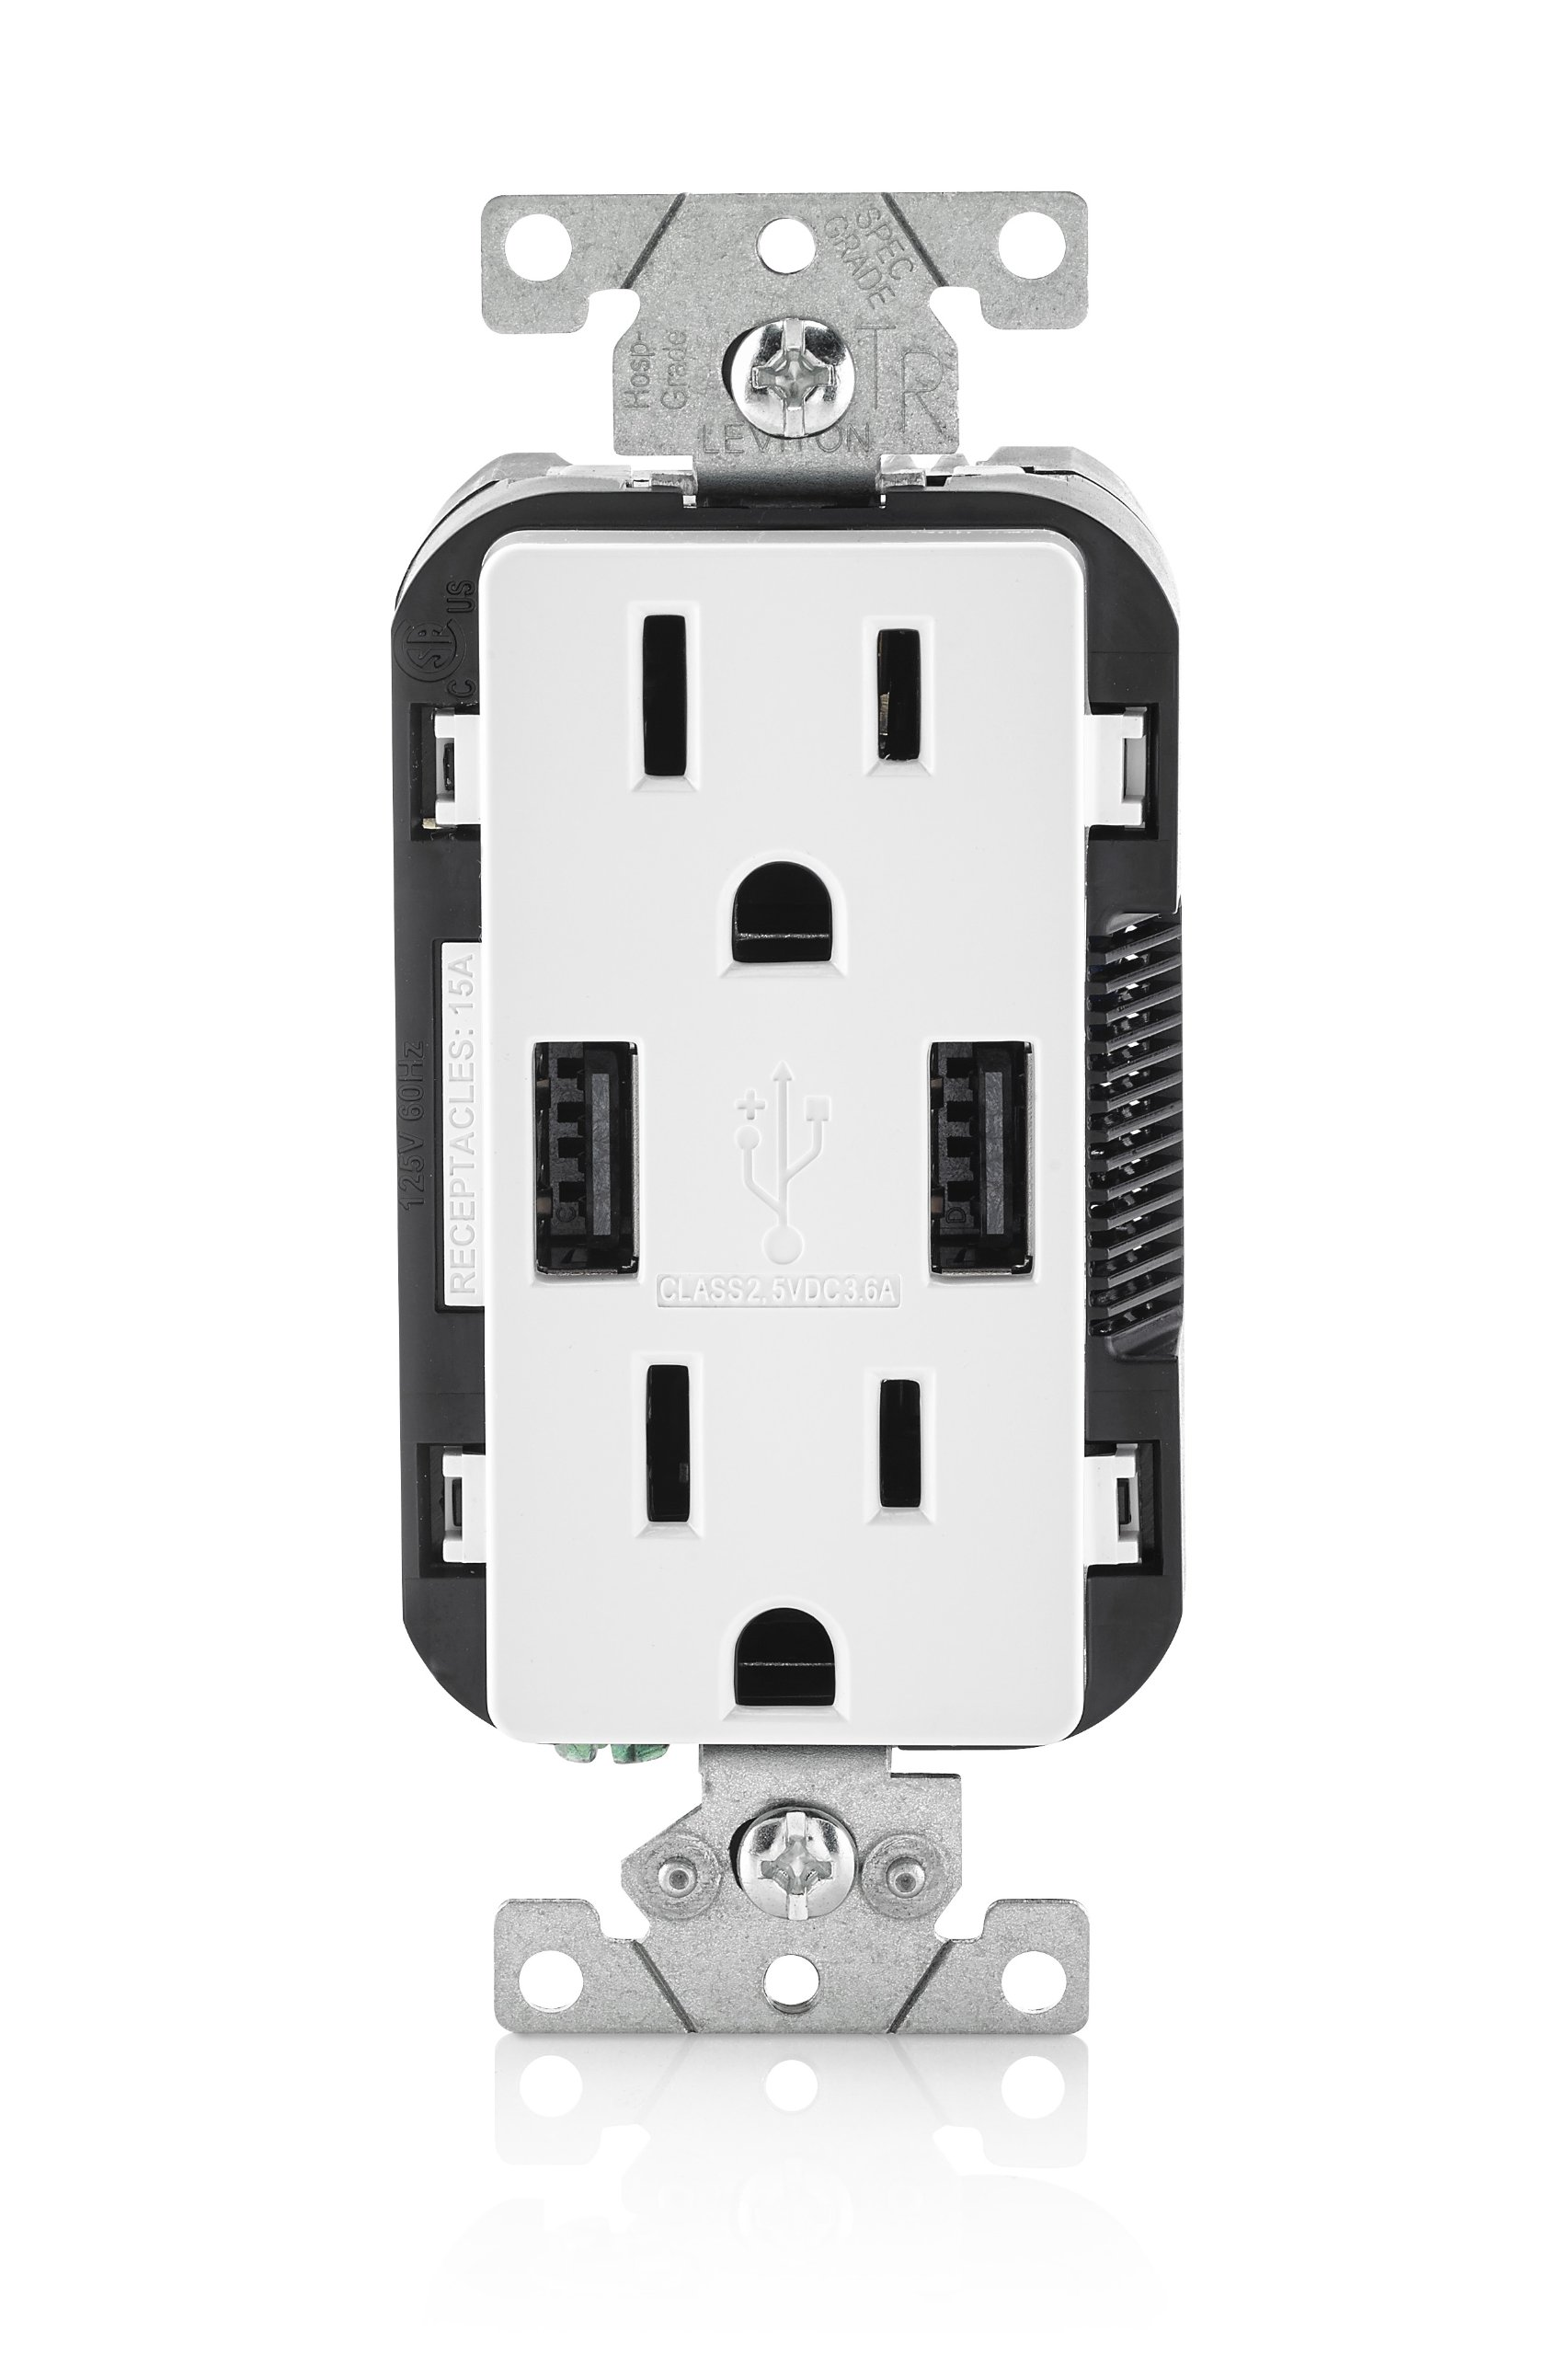 Leviton T5632-W USB Charger/Tamper-Resistant Duplex Receptacle, 15-Amp, 8-Pack, White by Leviton